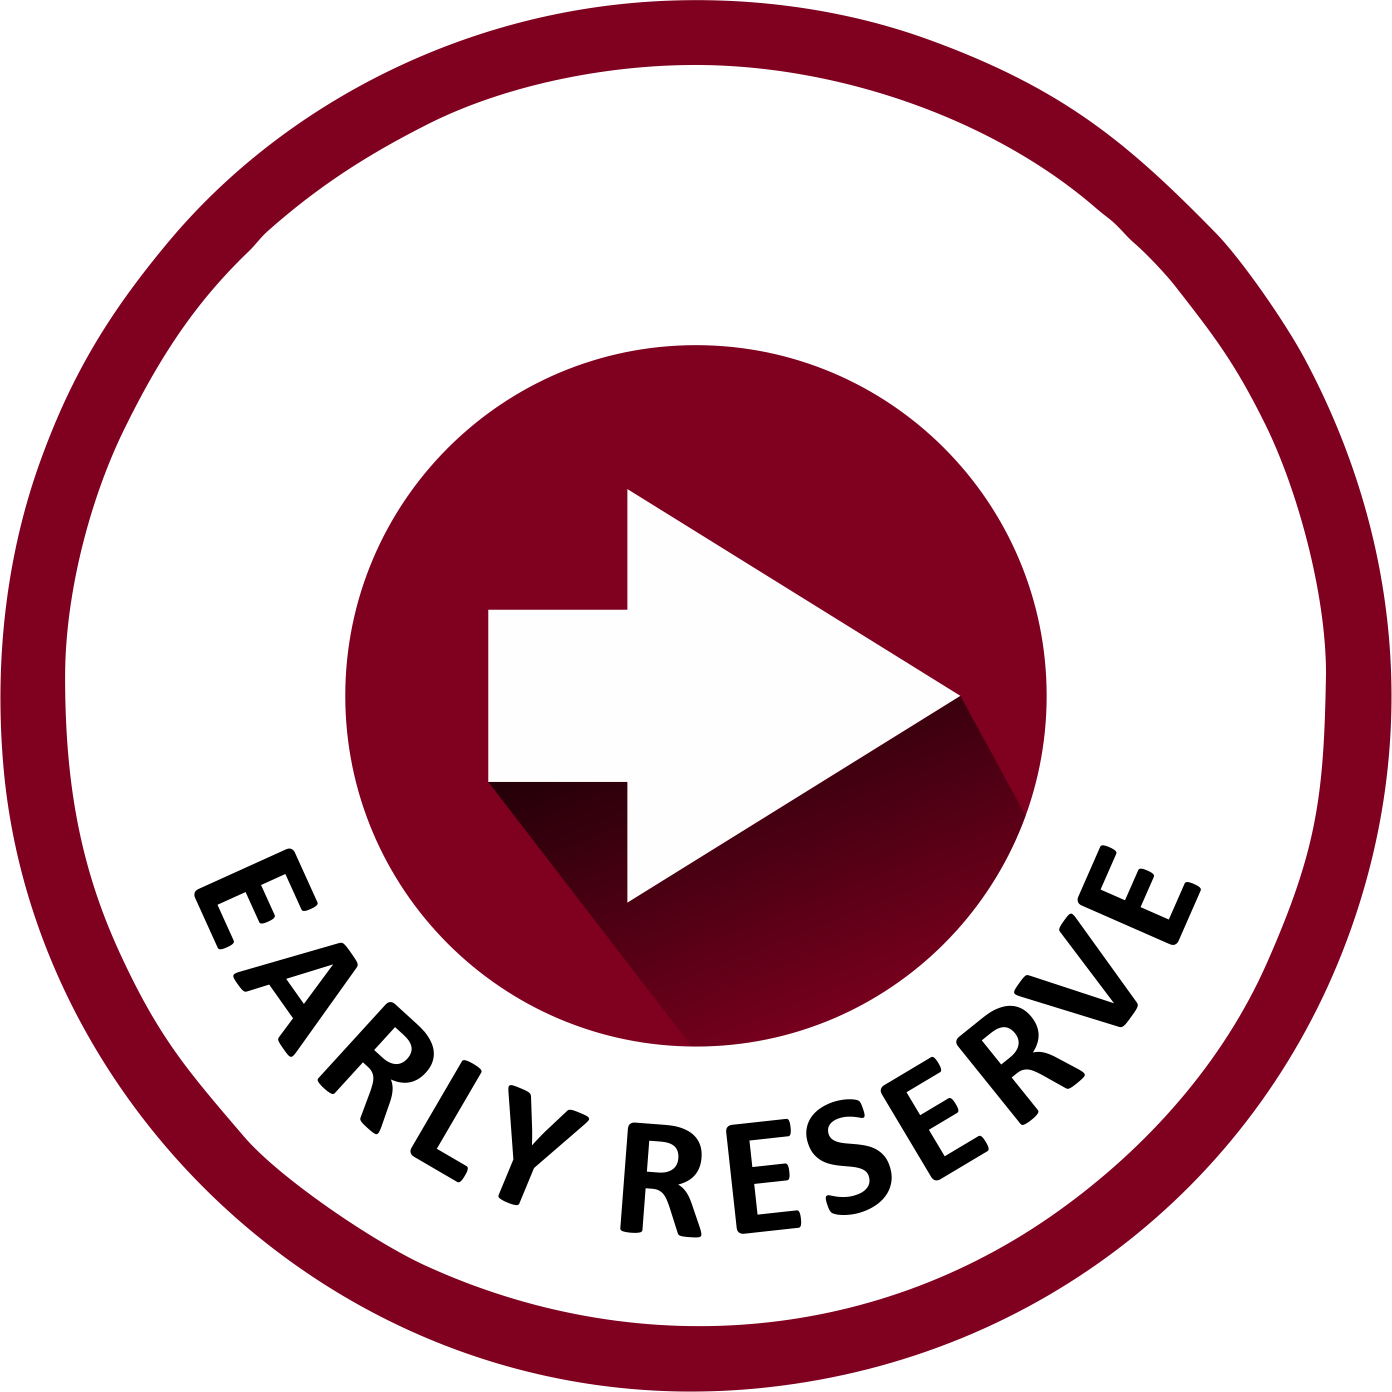 EARLY RESERVE SYSTEM